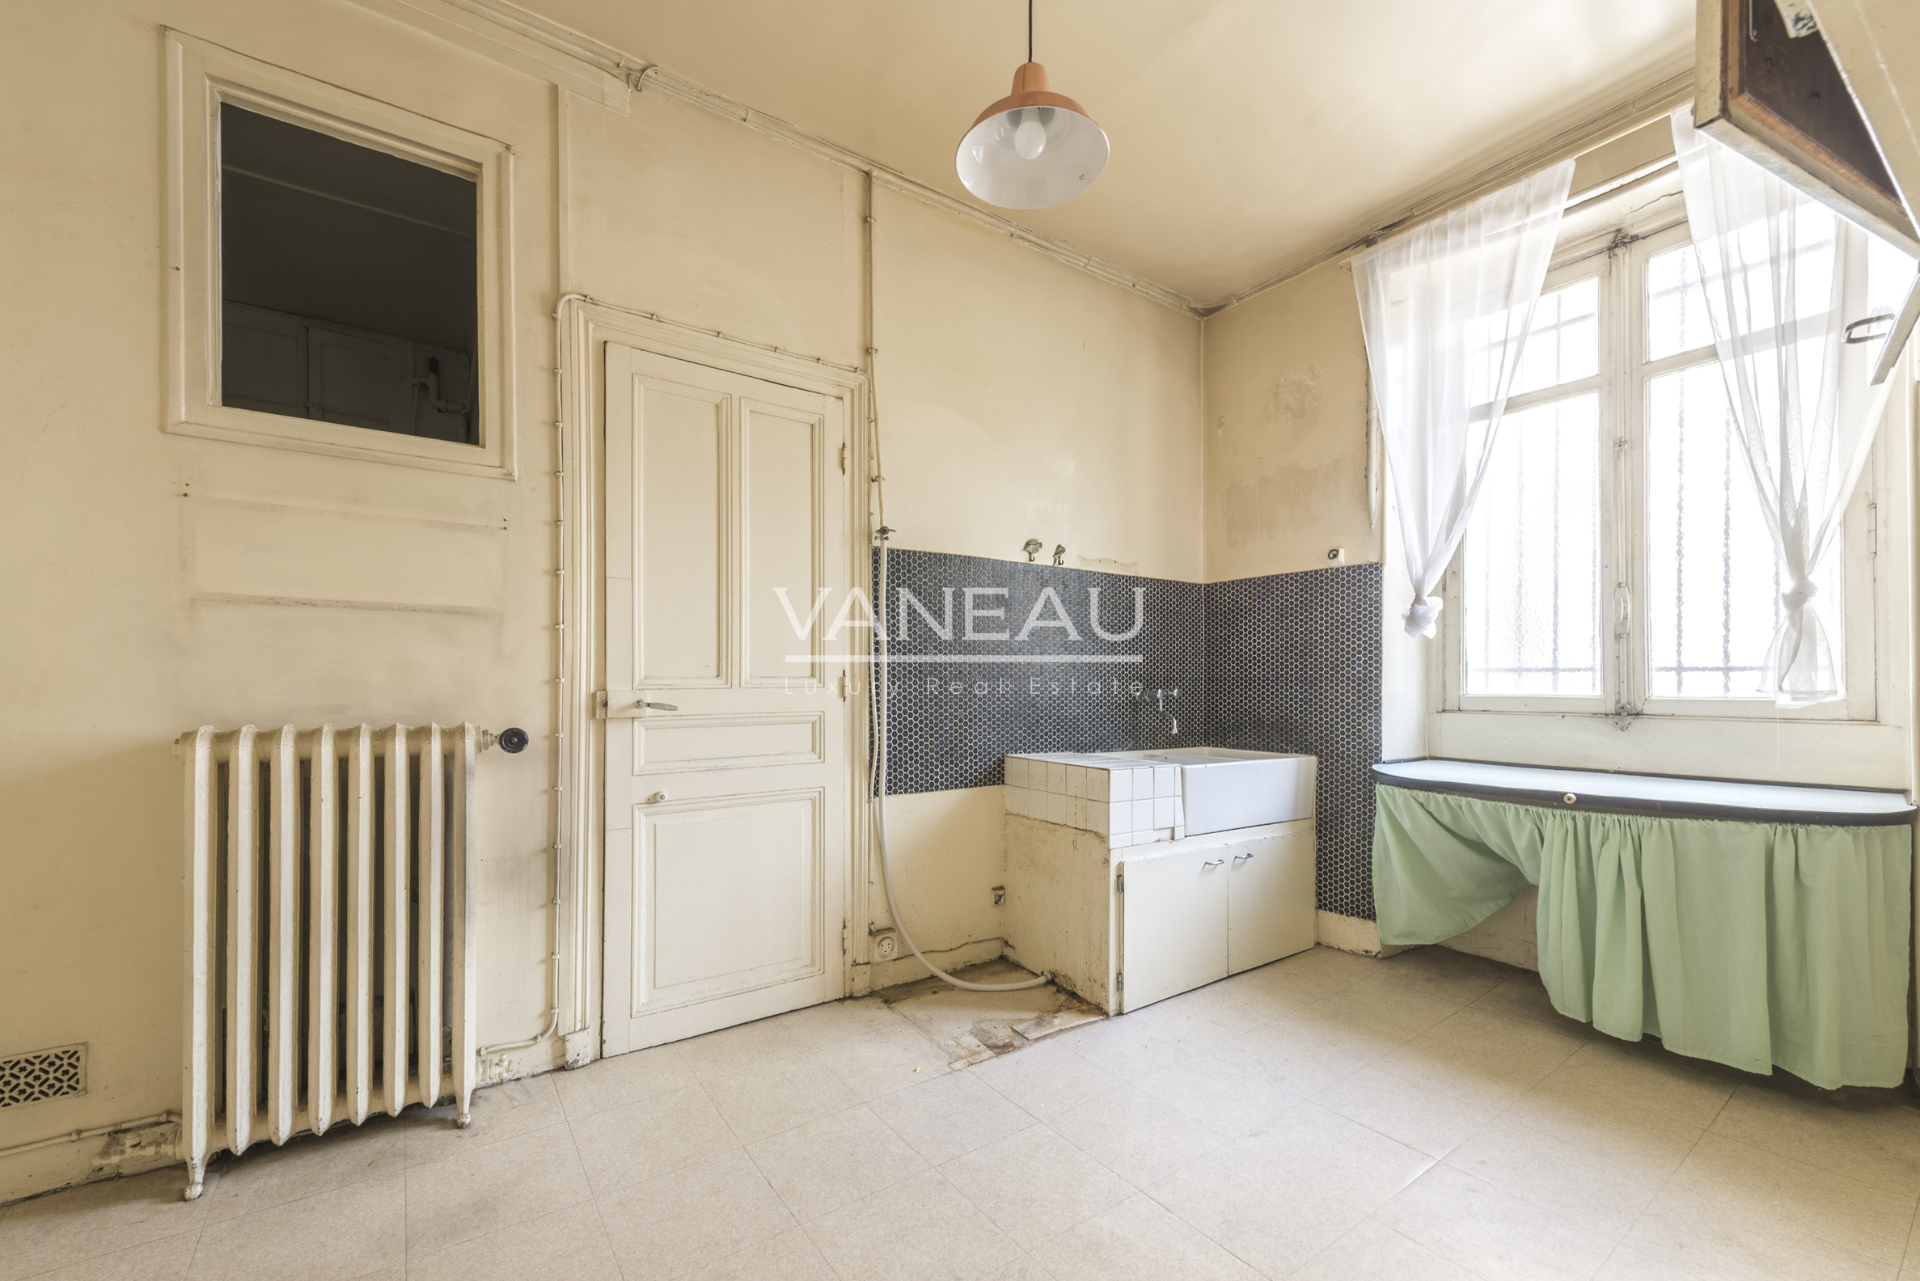 Real estate Paris – France – Vaneau – 3